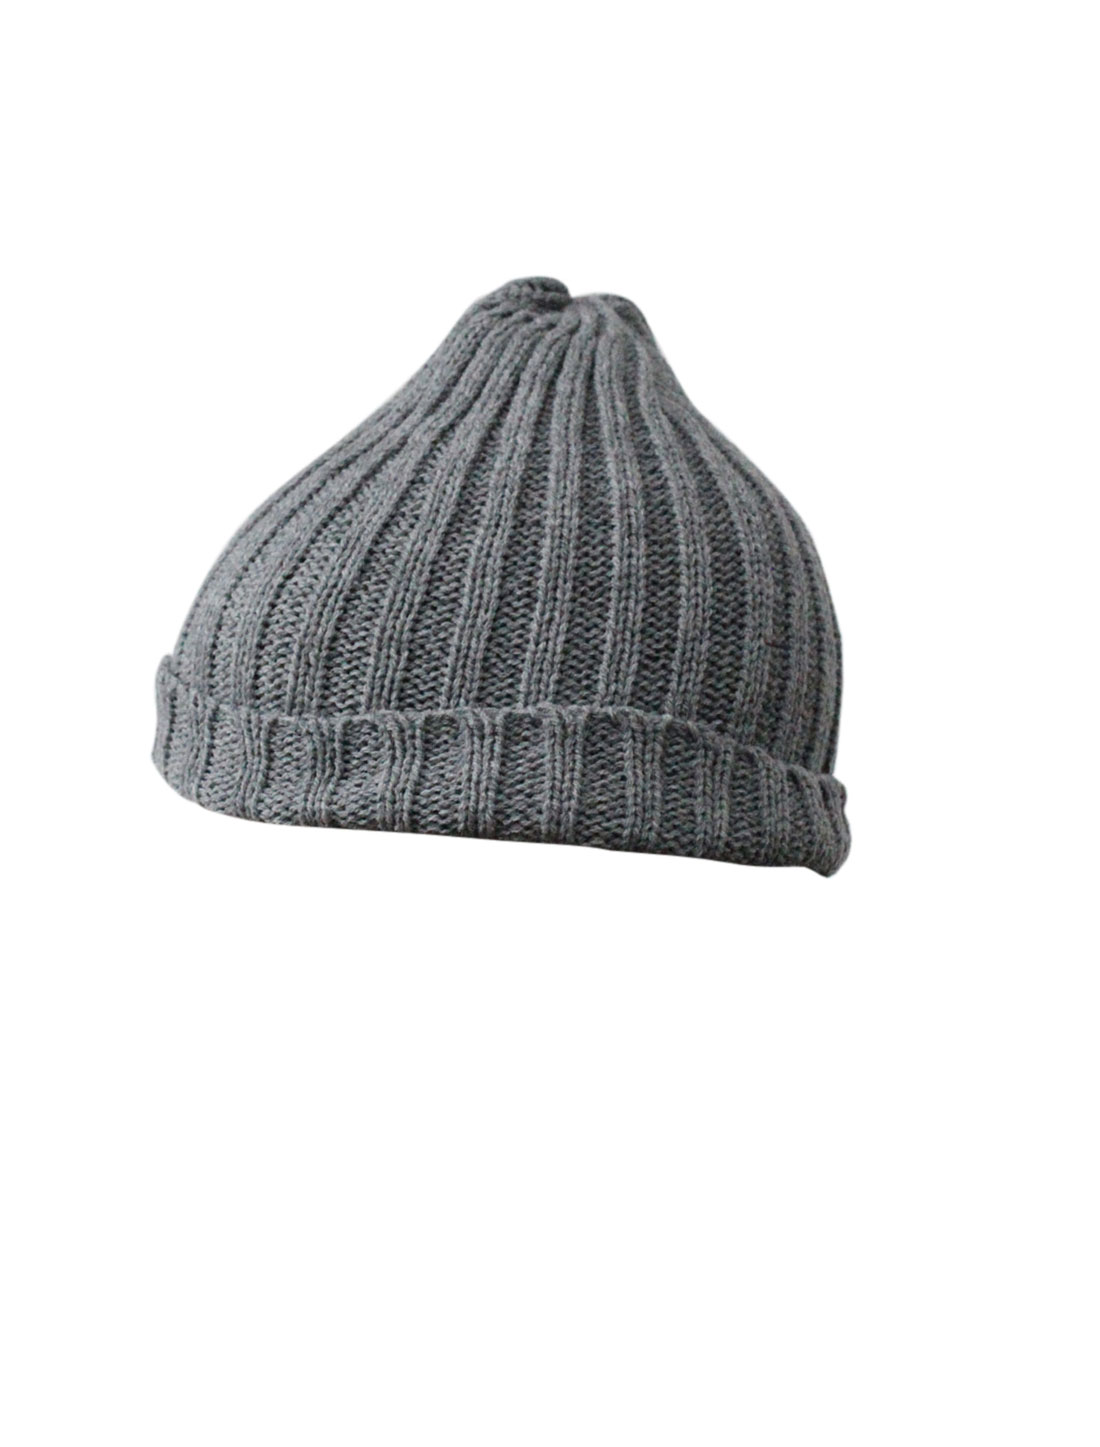 Men Women Light Gray Outdoor Stretchy Thick Rib Knit Beanie Hat